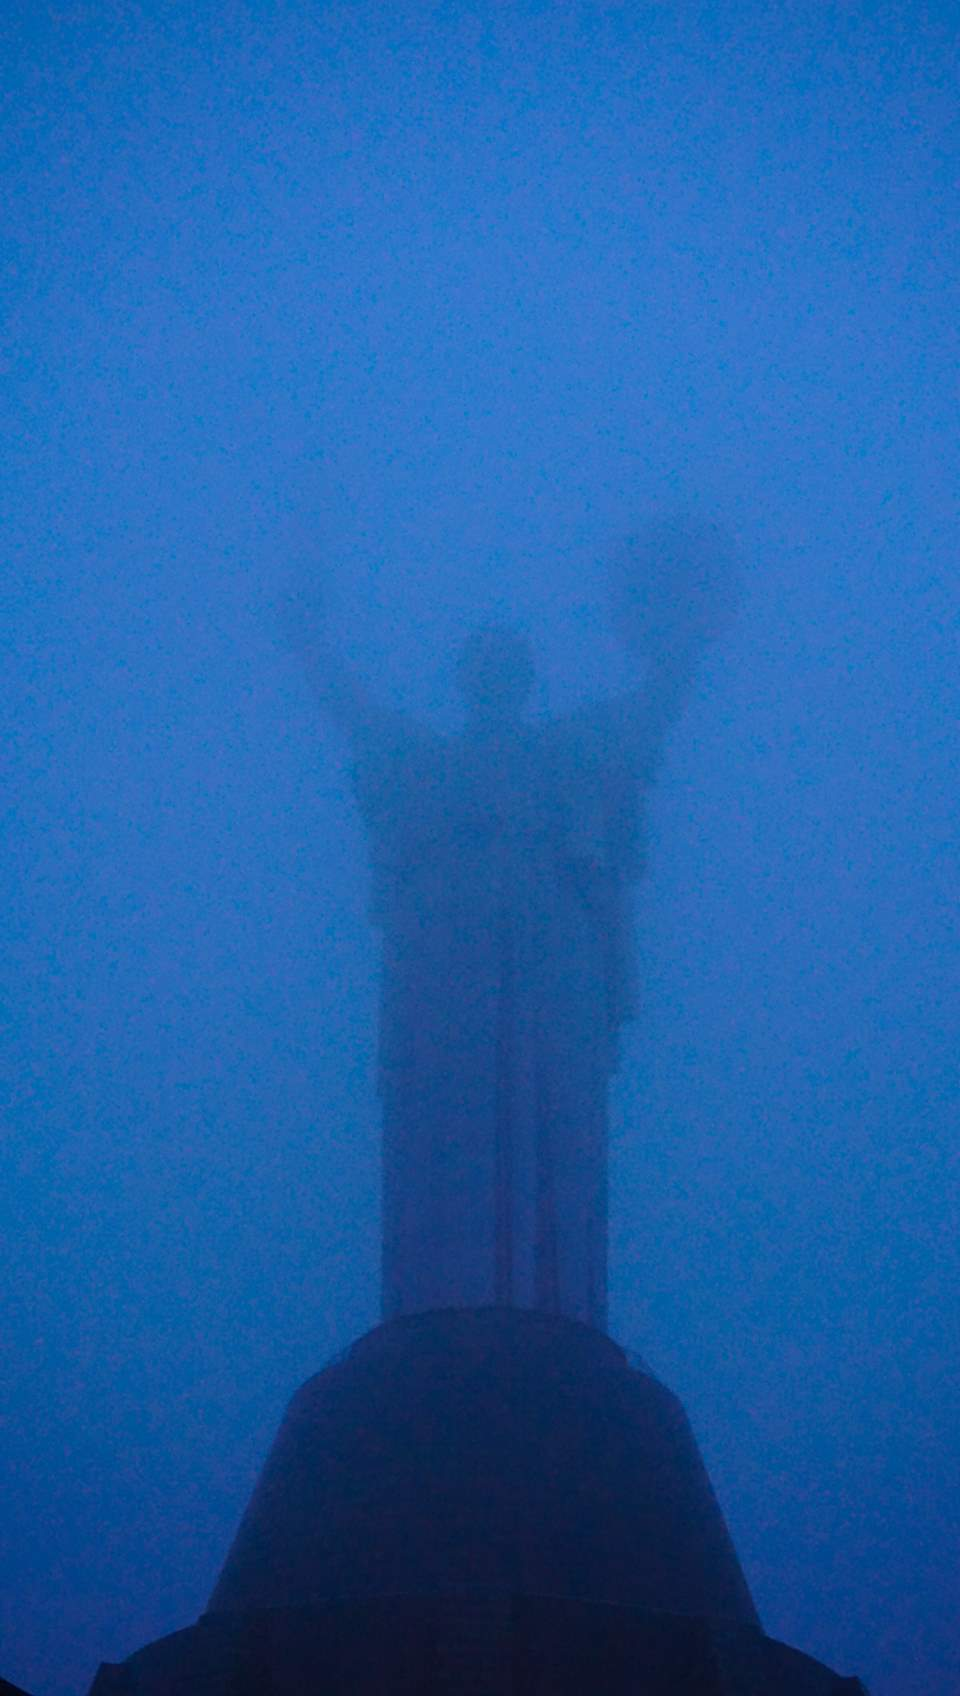 The Motherland monument in Kyiv